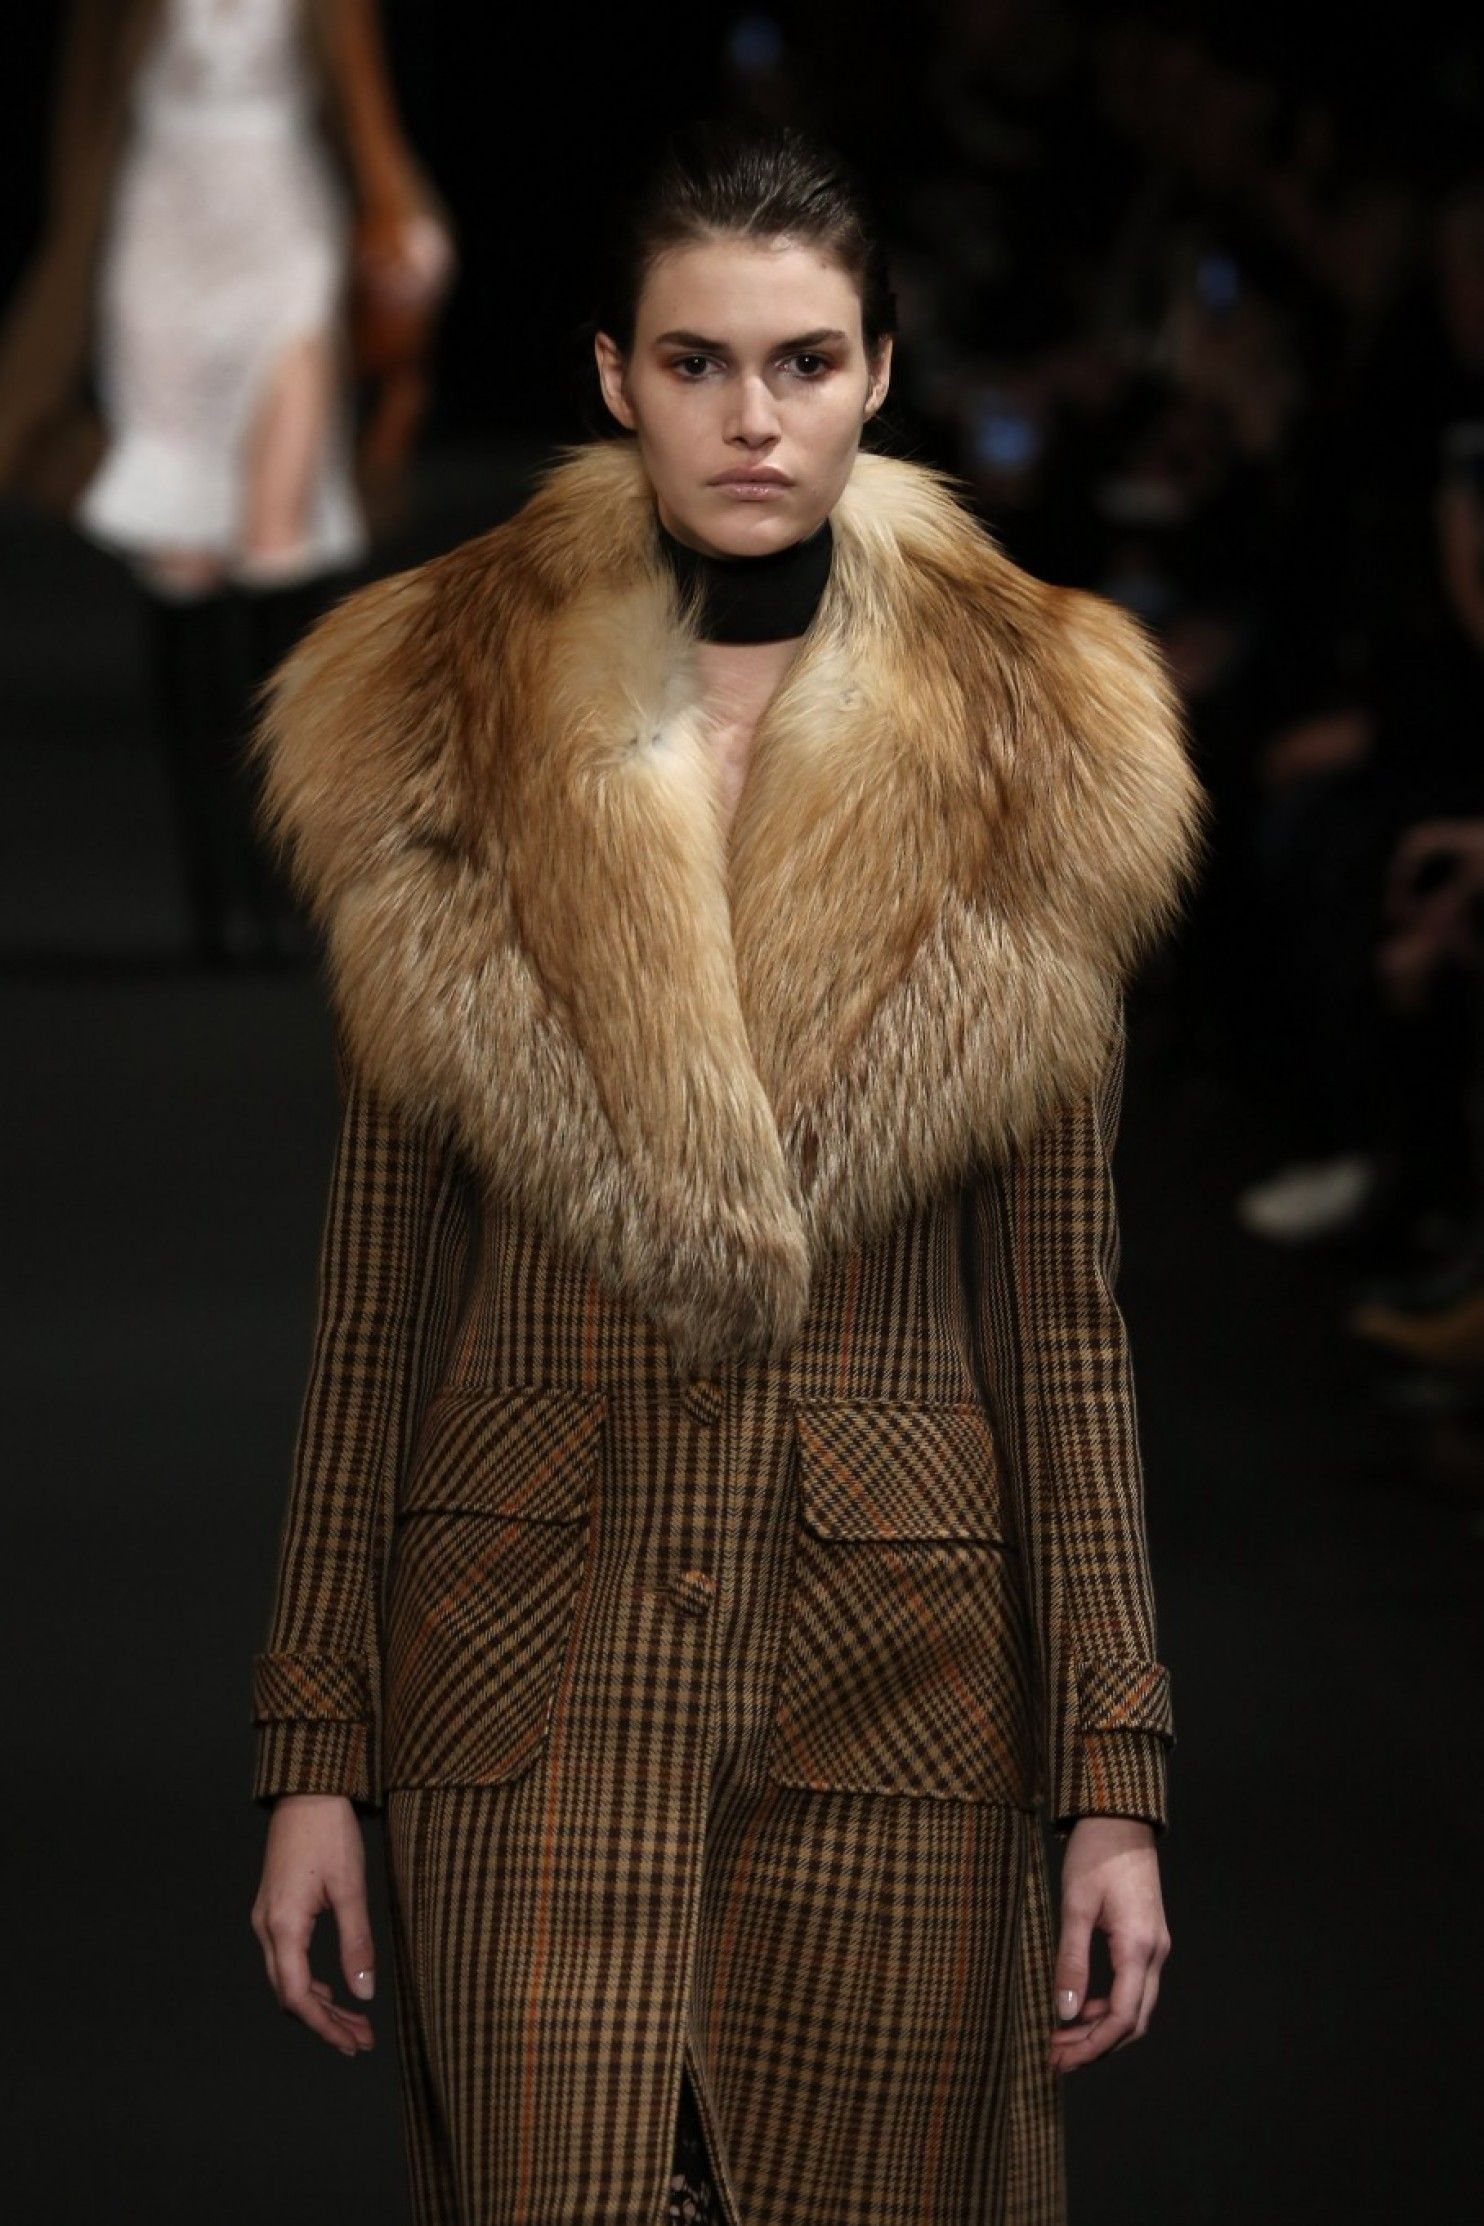 NYFW: The meaning of dirty hair on the fashion runway - The Washington Post